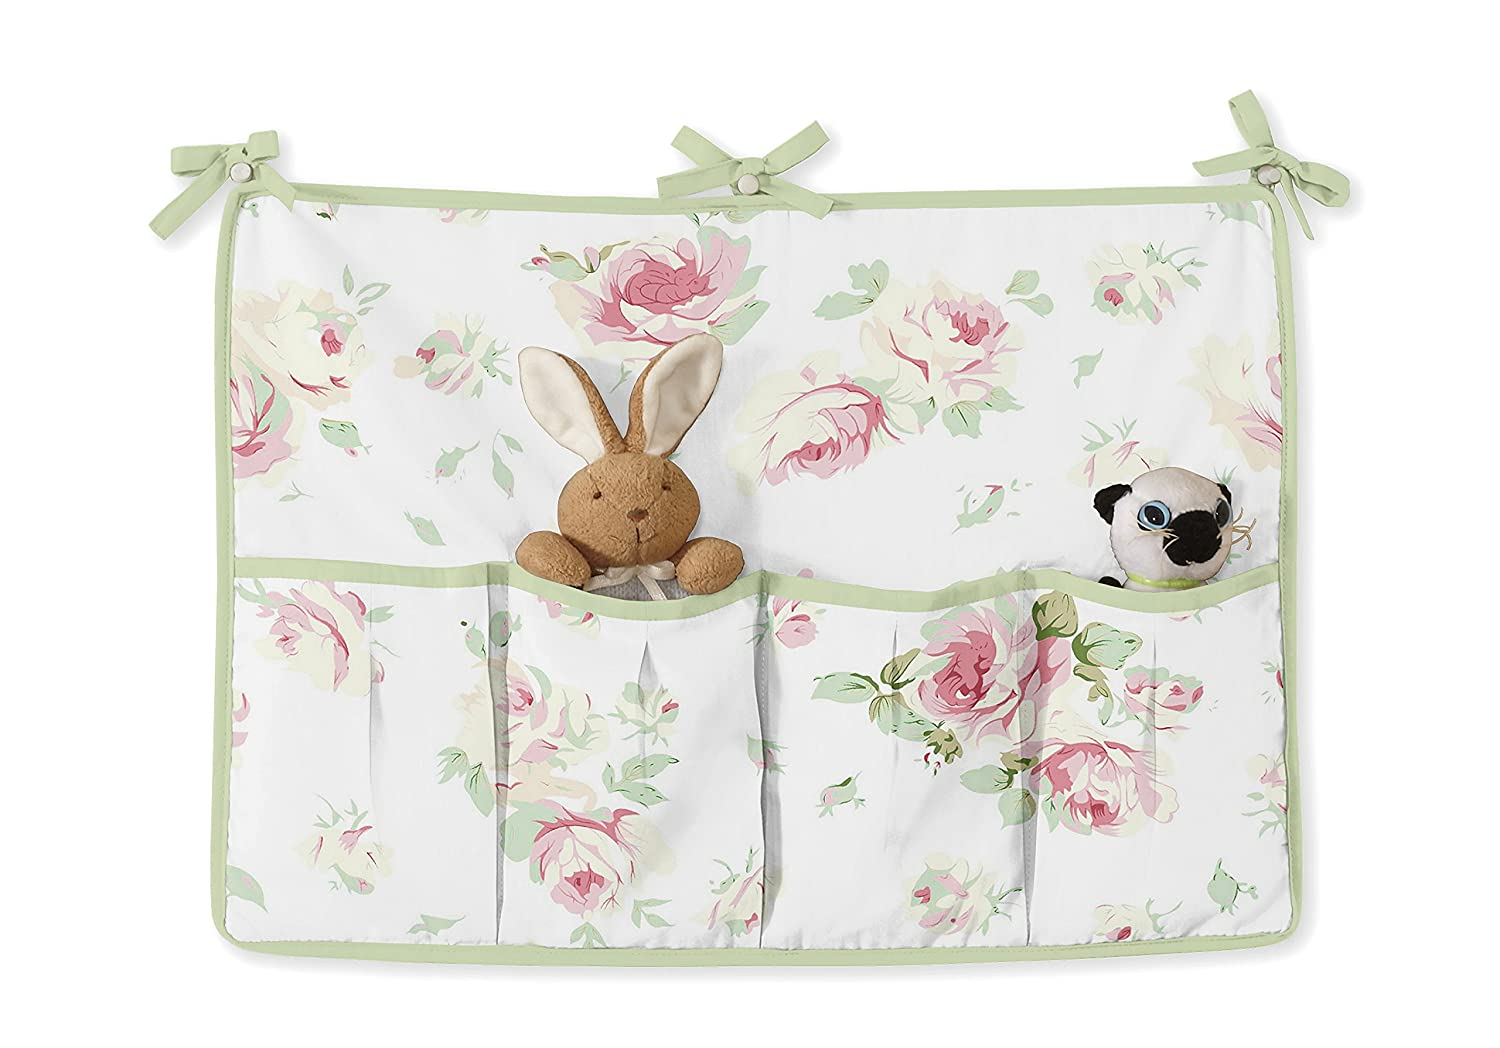 Sweet Jojo Designs 9-Piece Rileys Roses Pink and Sage Green Shabby Chic Floral Baby Girl Flower Bedding Crib Set